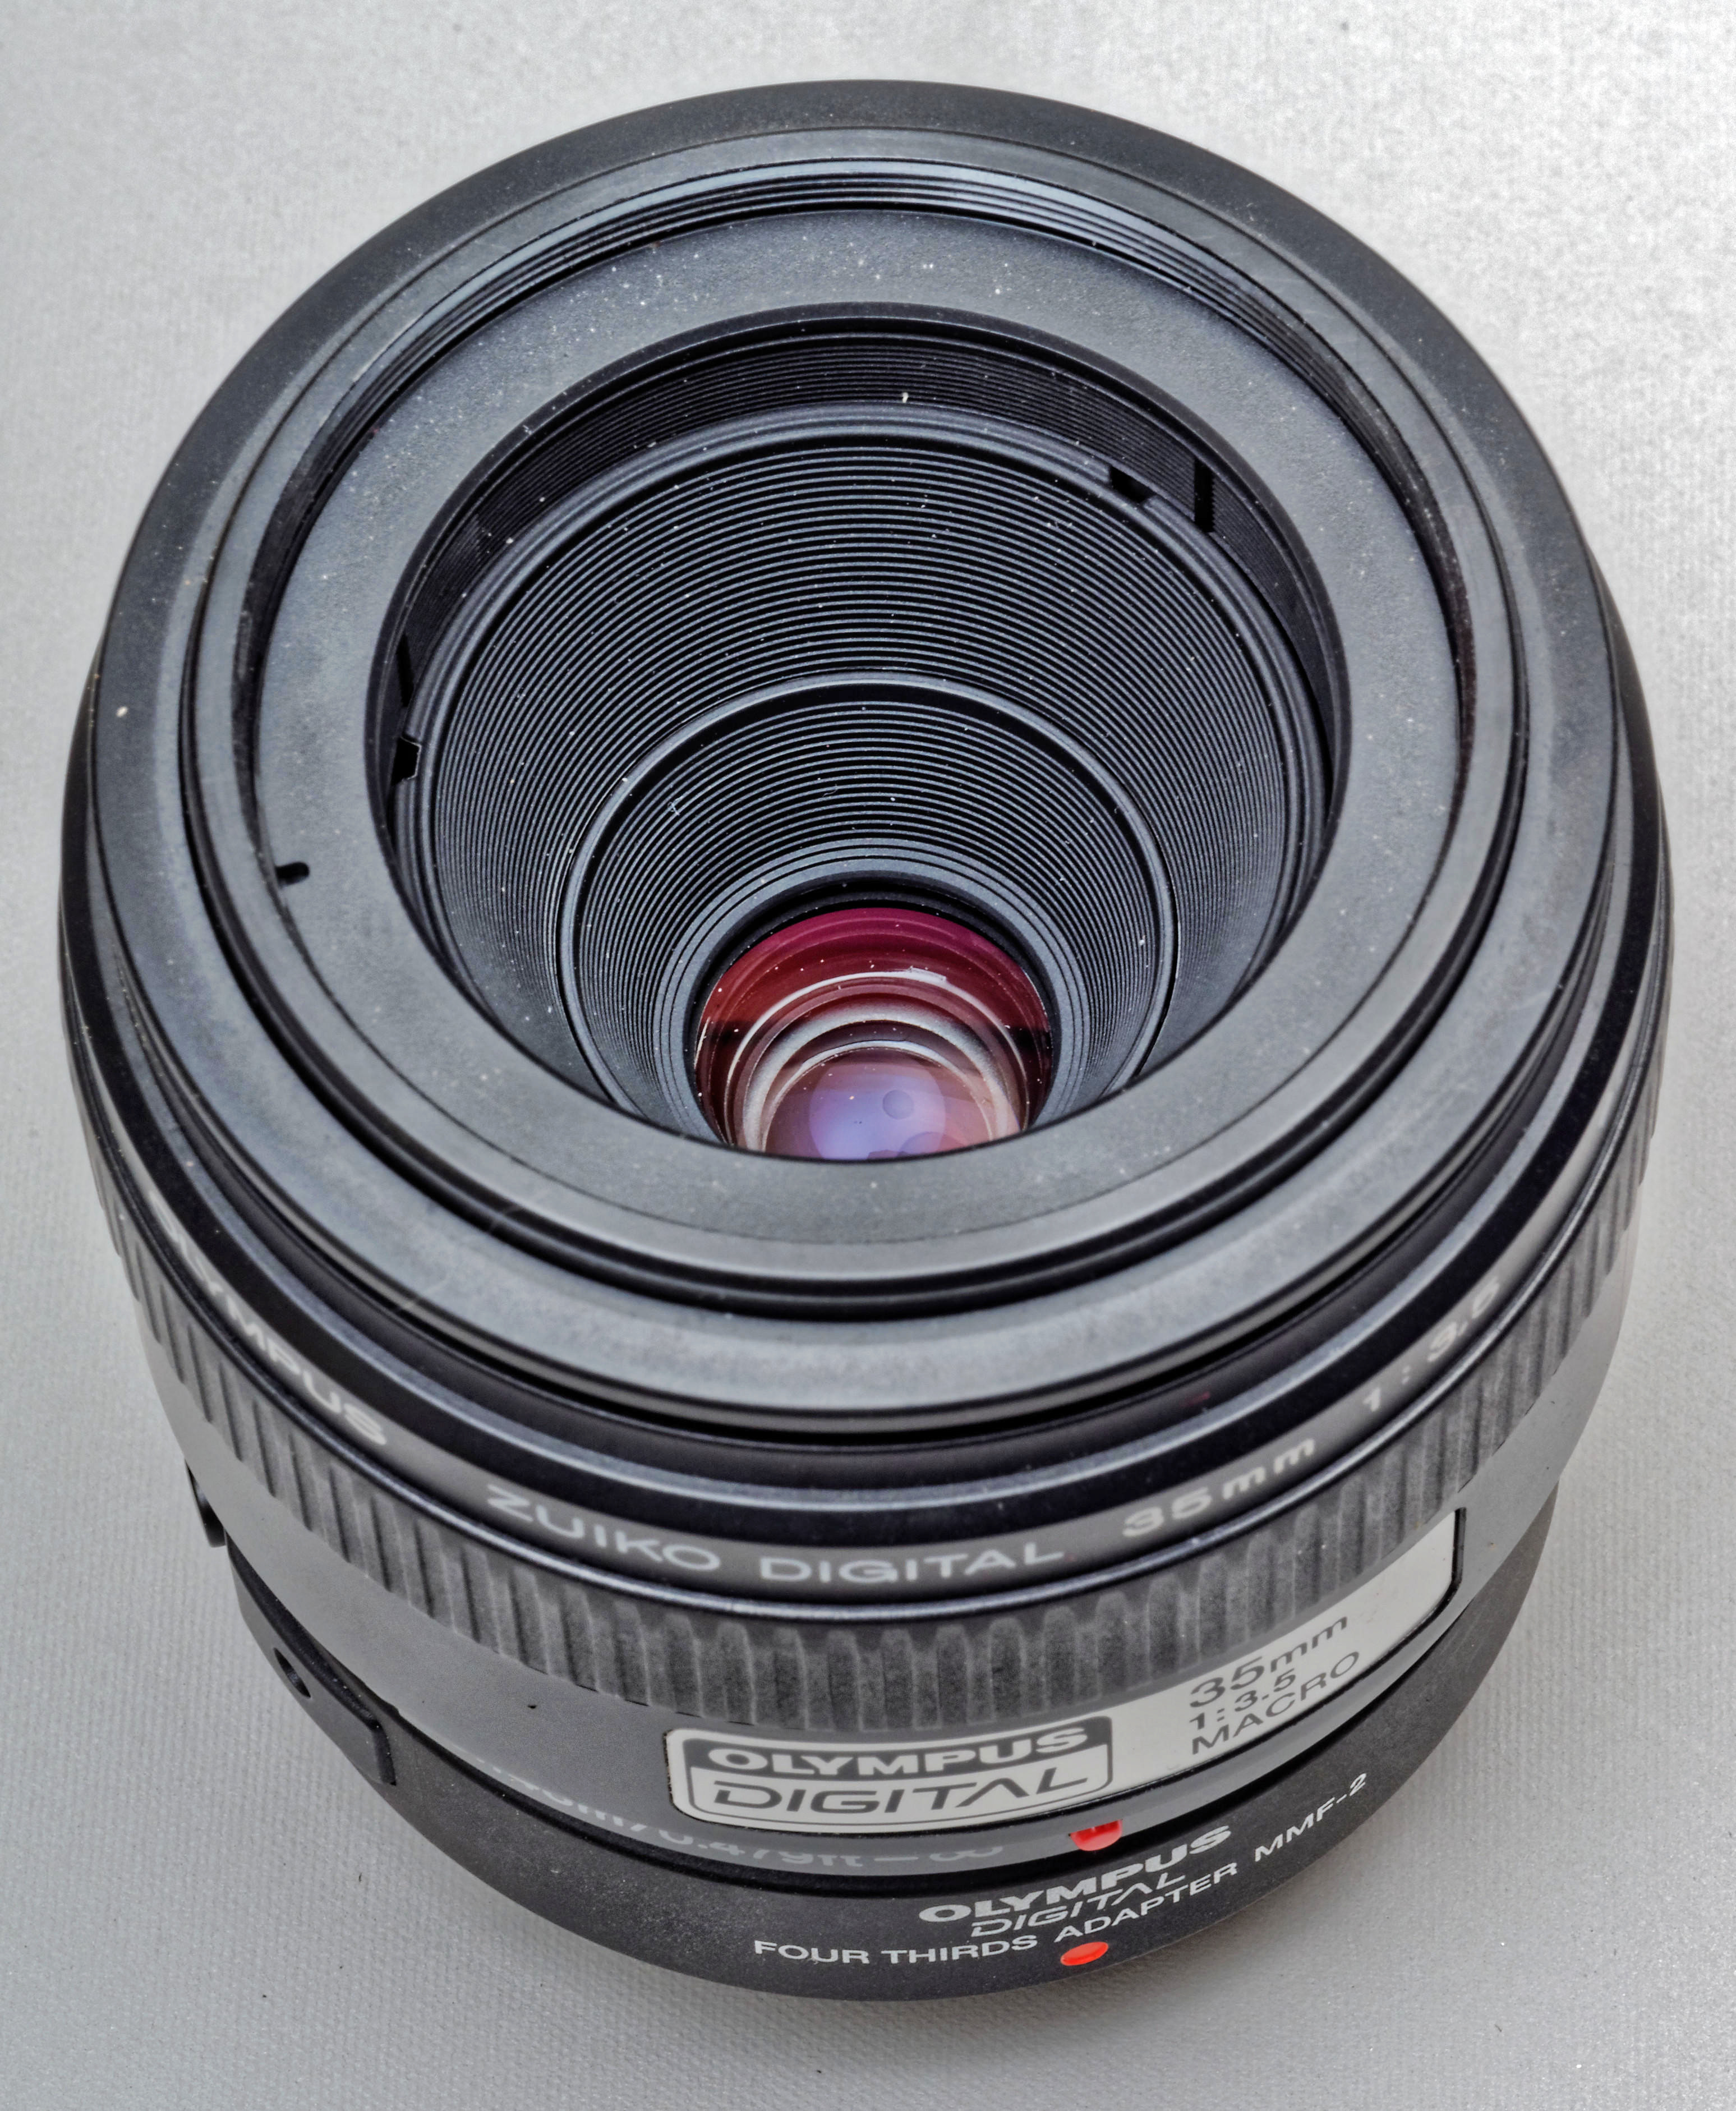 This should be Zuiko-digital-35-3.5.jpeg.  Is it missing?